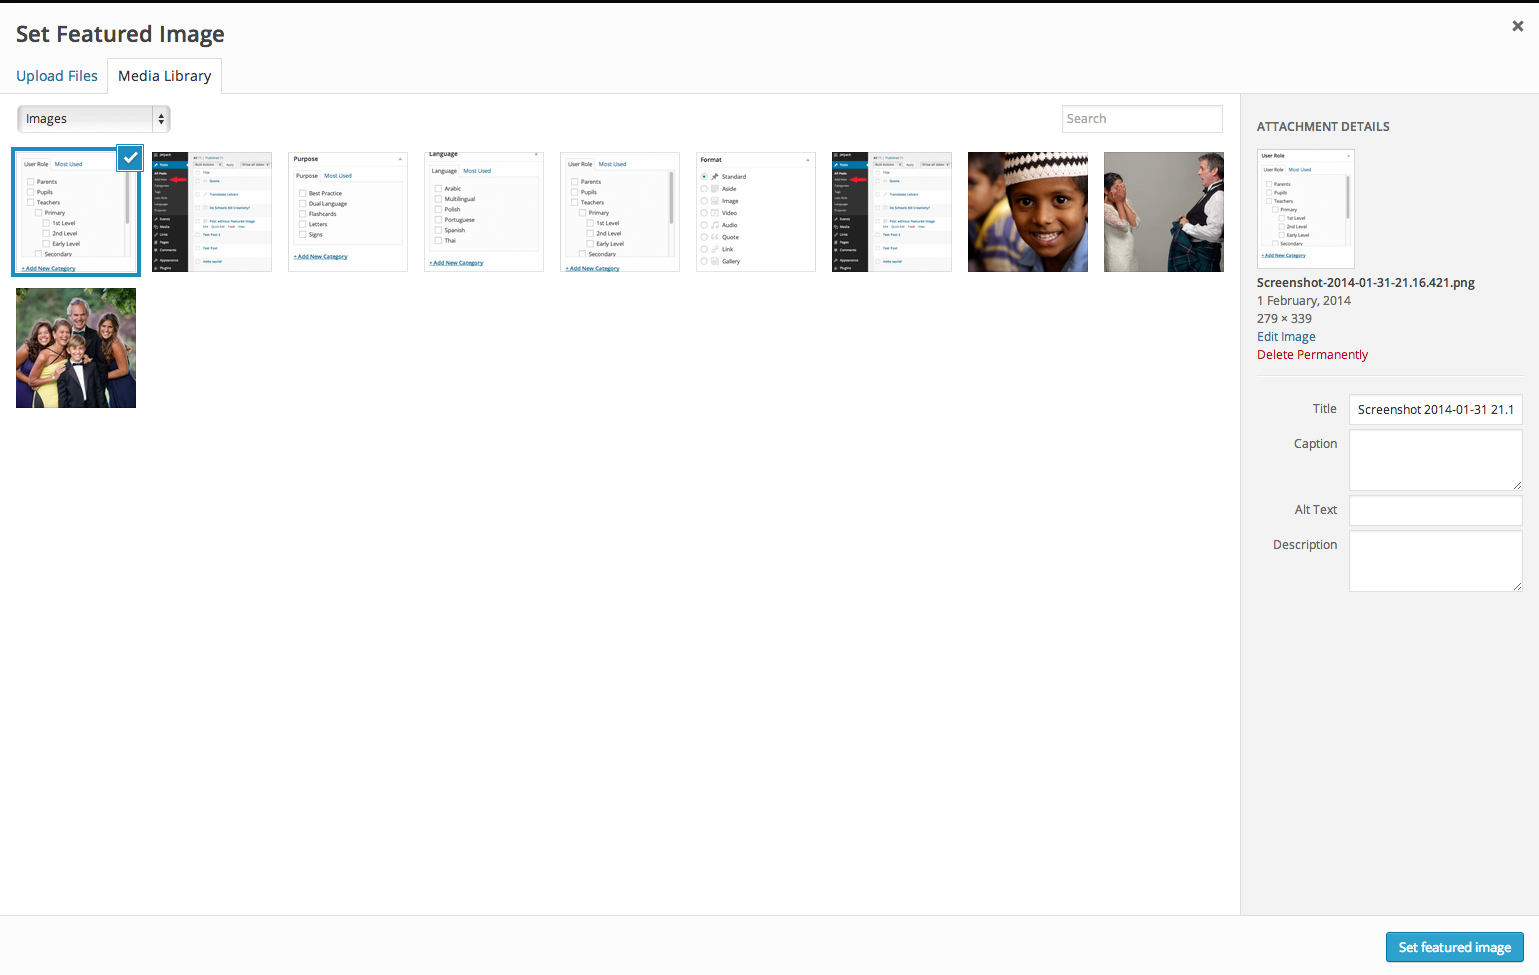 The Featured Image window